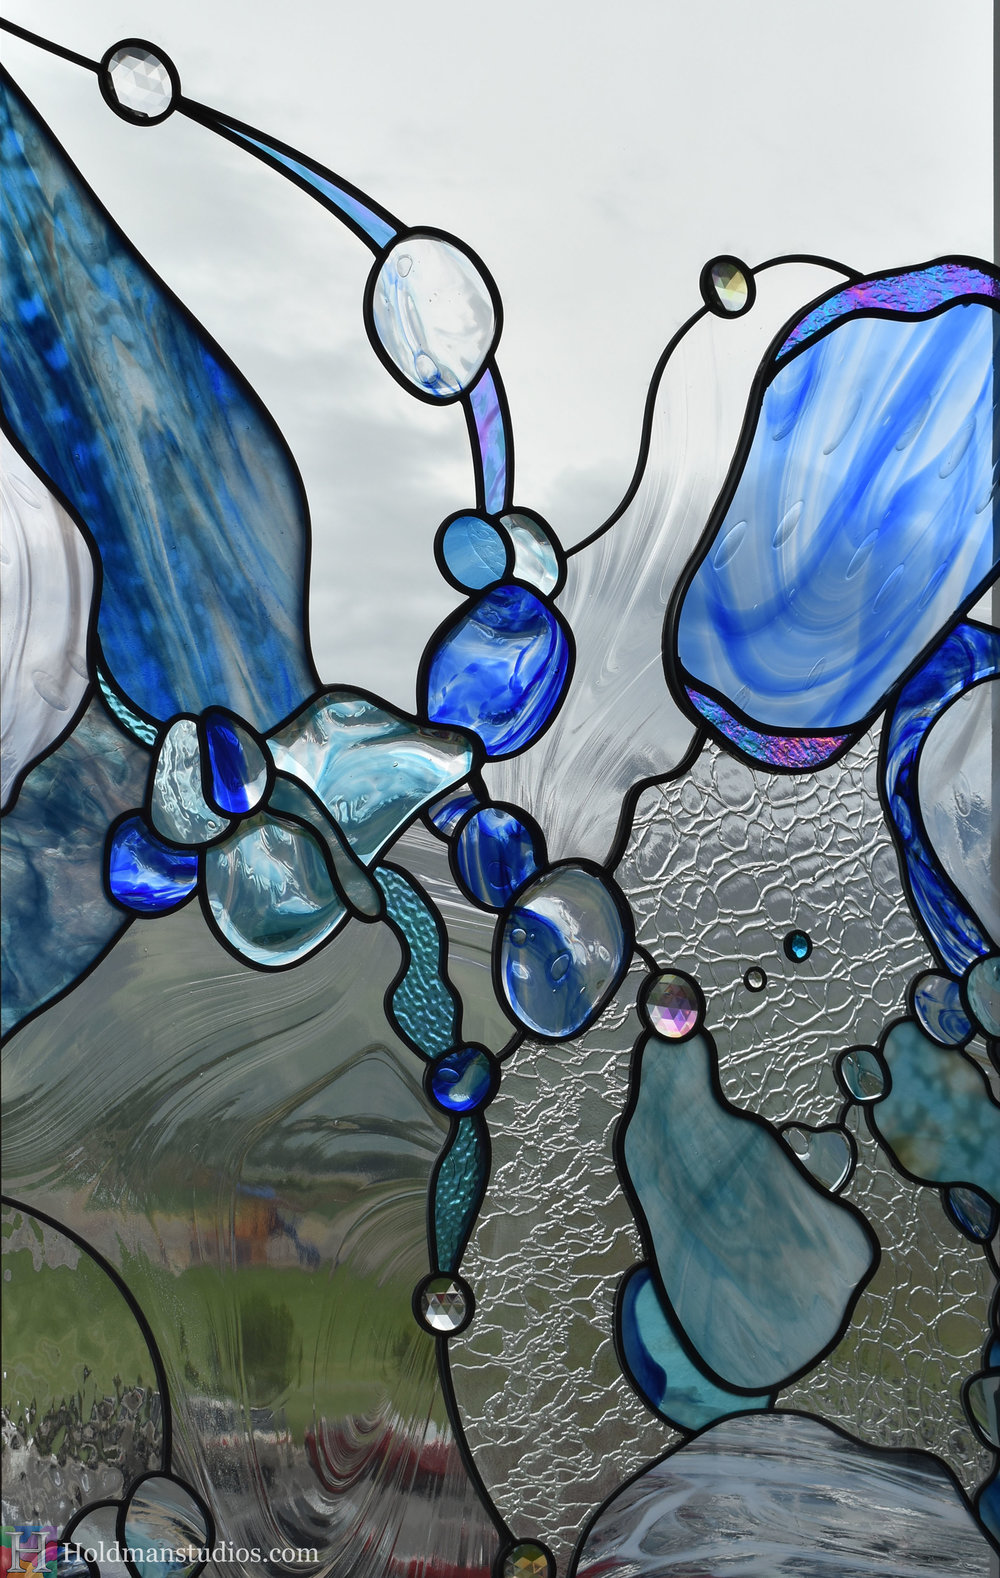 holdman-studios-hand-blown-stained-glass-window-springville-clyde-rec-center-slash-and-wave-cropped2.jpg